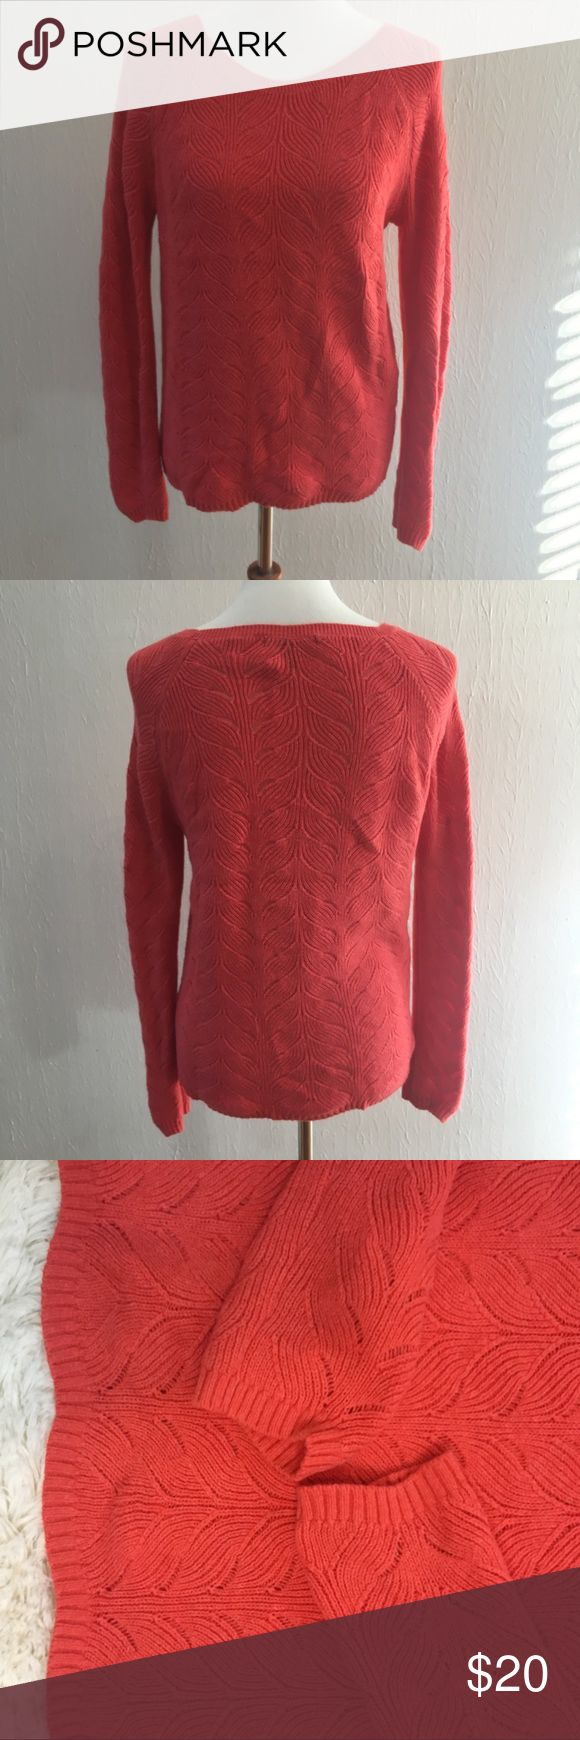 "Banana republic medium coral sweater BANANA REPUBLIC Women Medium cable knit sweater Coral  Flat lay measurements: 20"" chest, 28"" Sleeve, 16""  length from armpit, 25-1/2"" length from shoulder   9-44 Banana Republic Sweaters Crew & Scoop Necks"